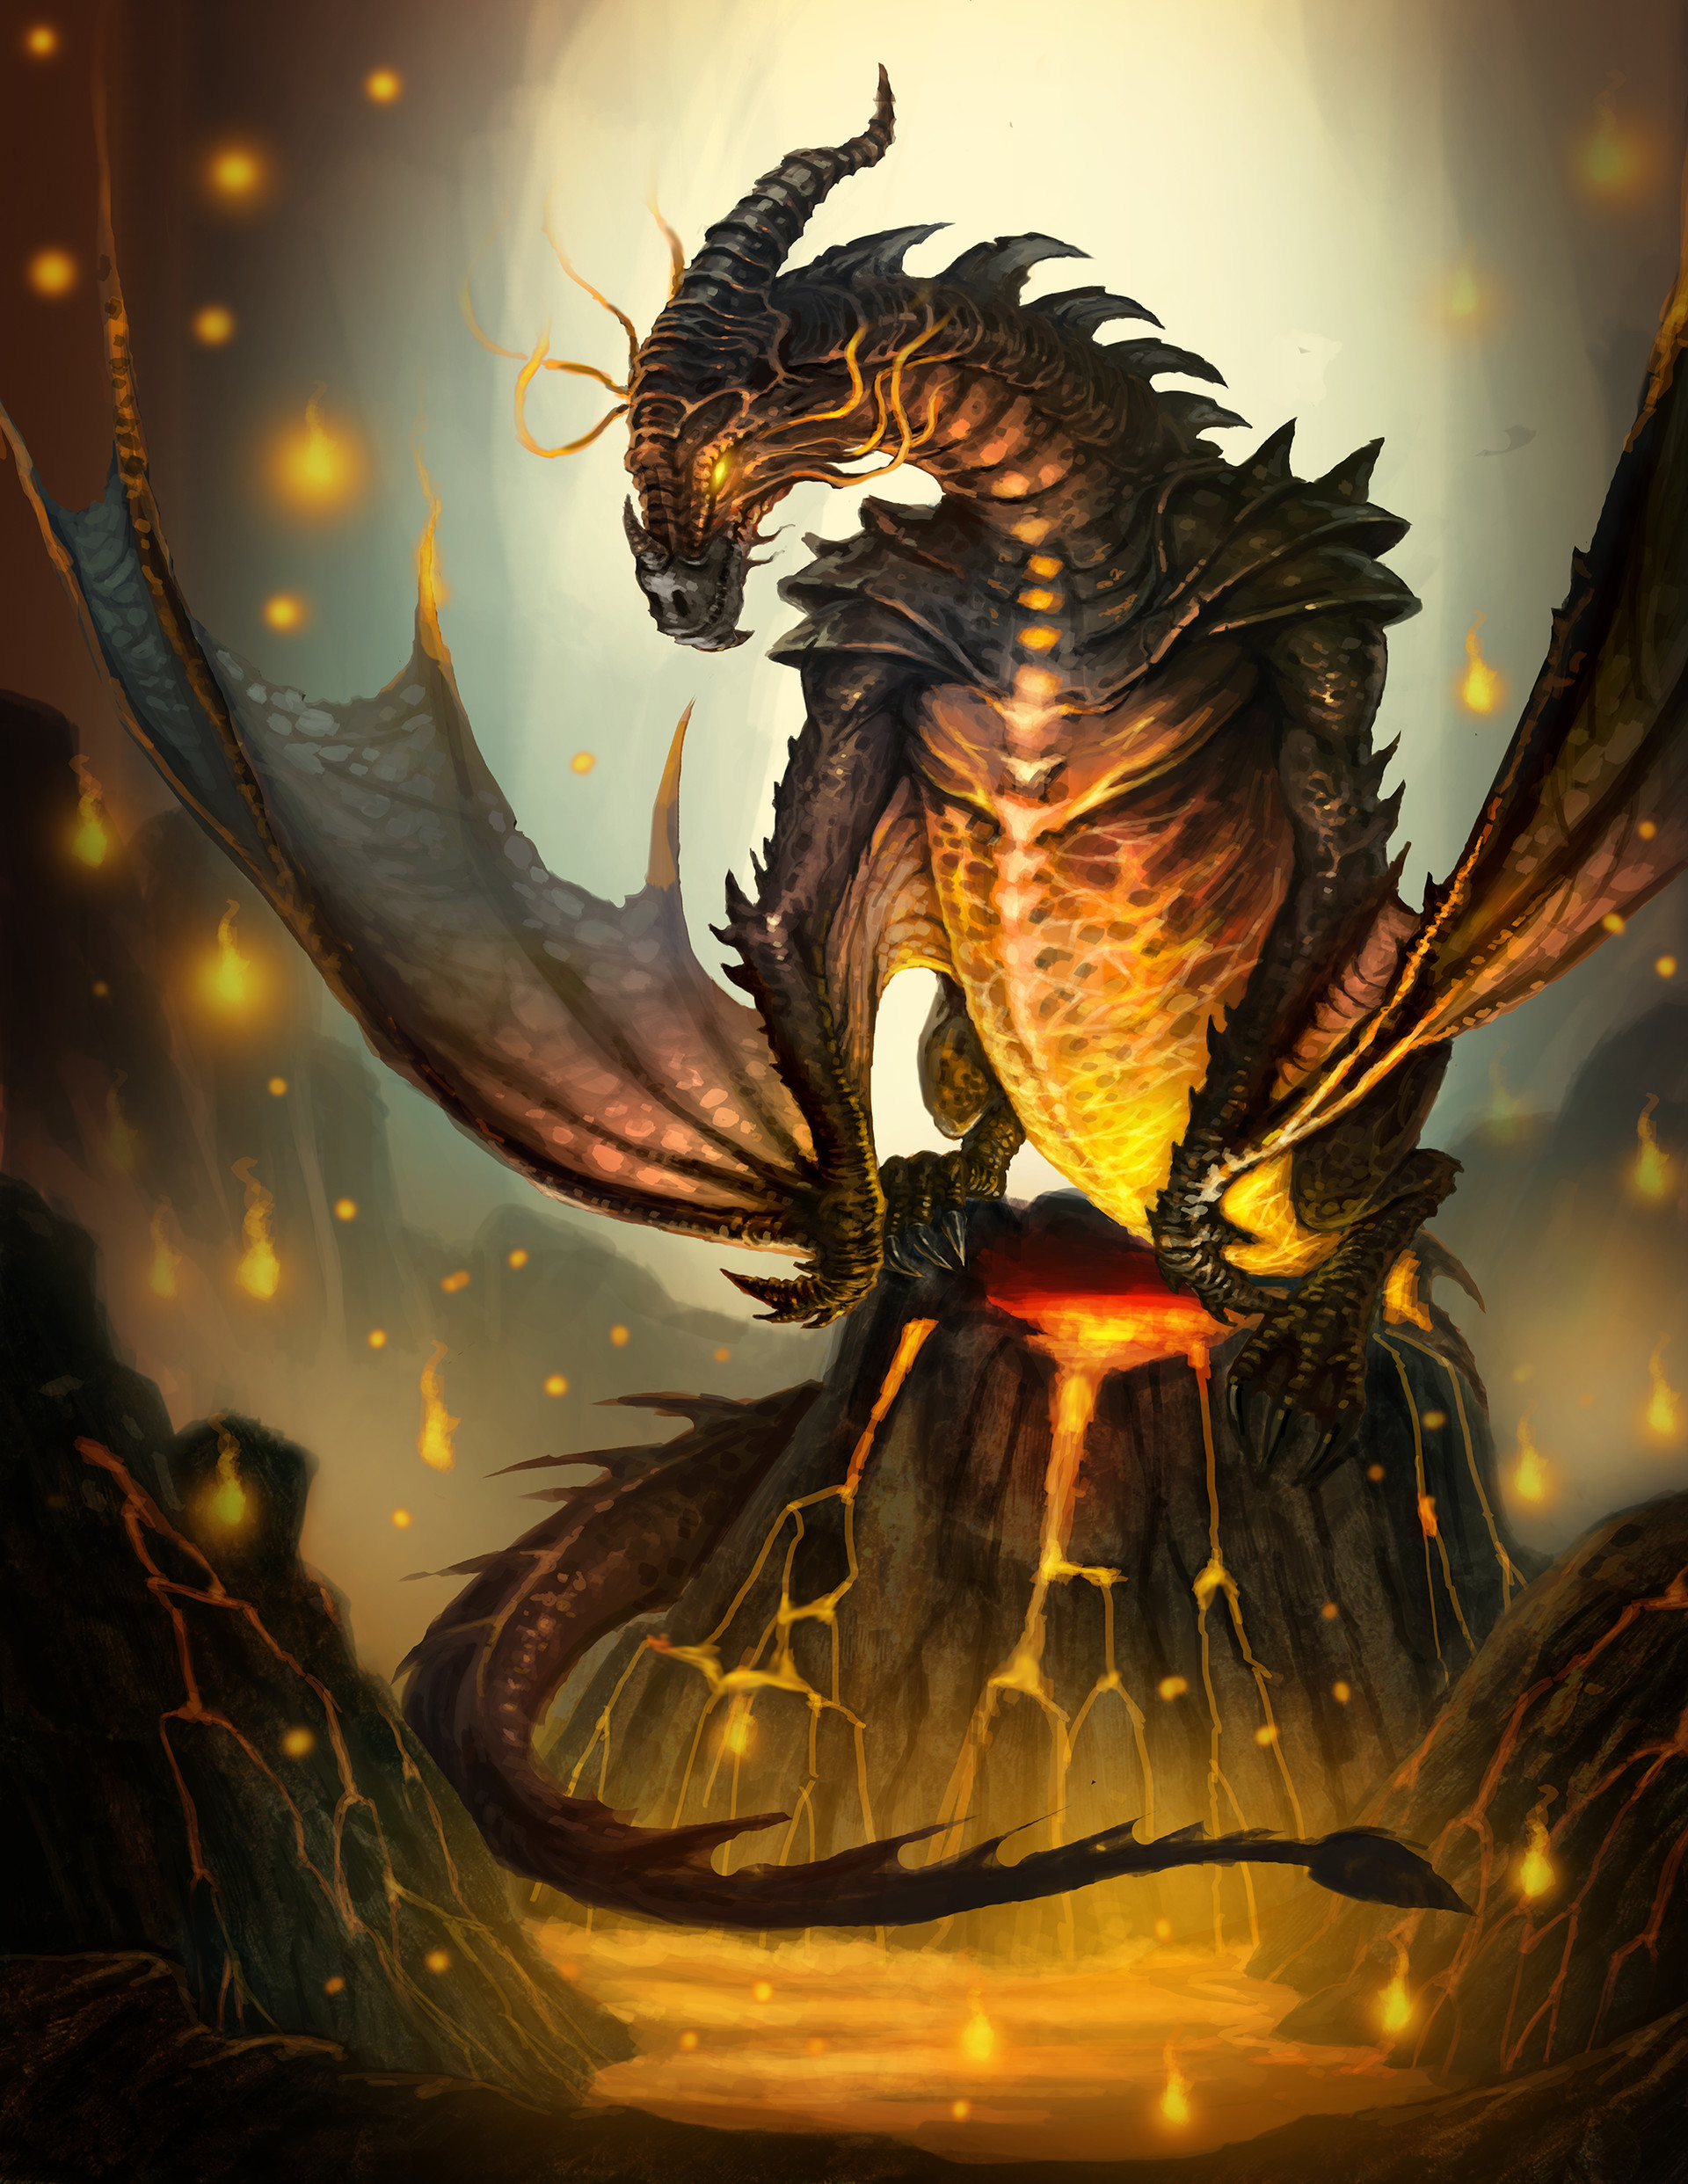 Chalmer relatorre fire dragon mythical creature